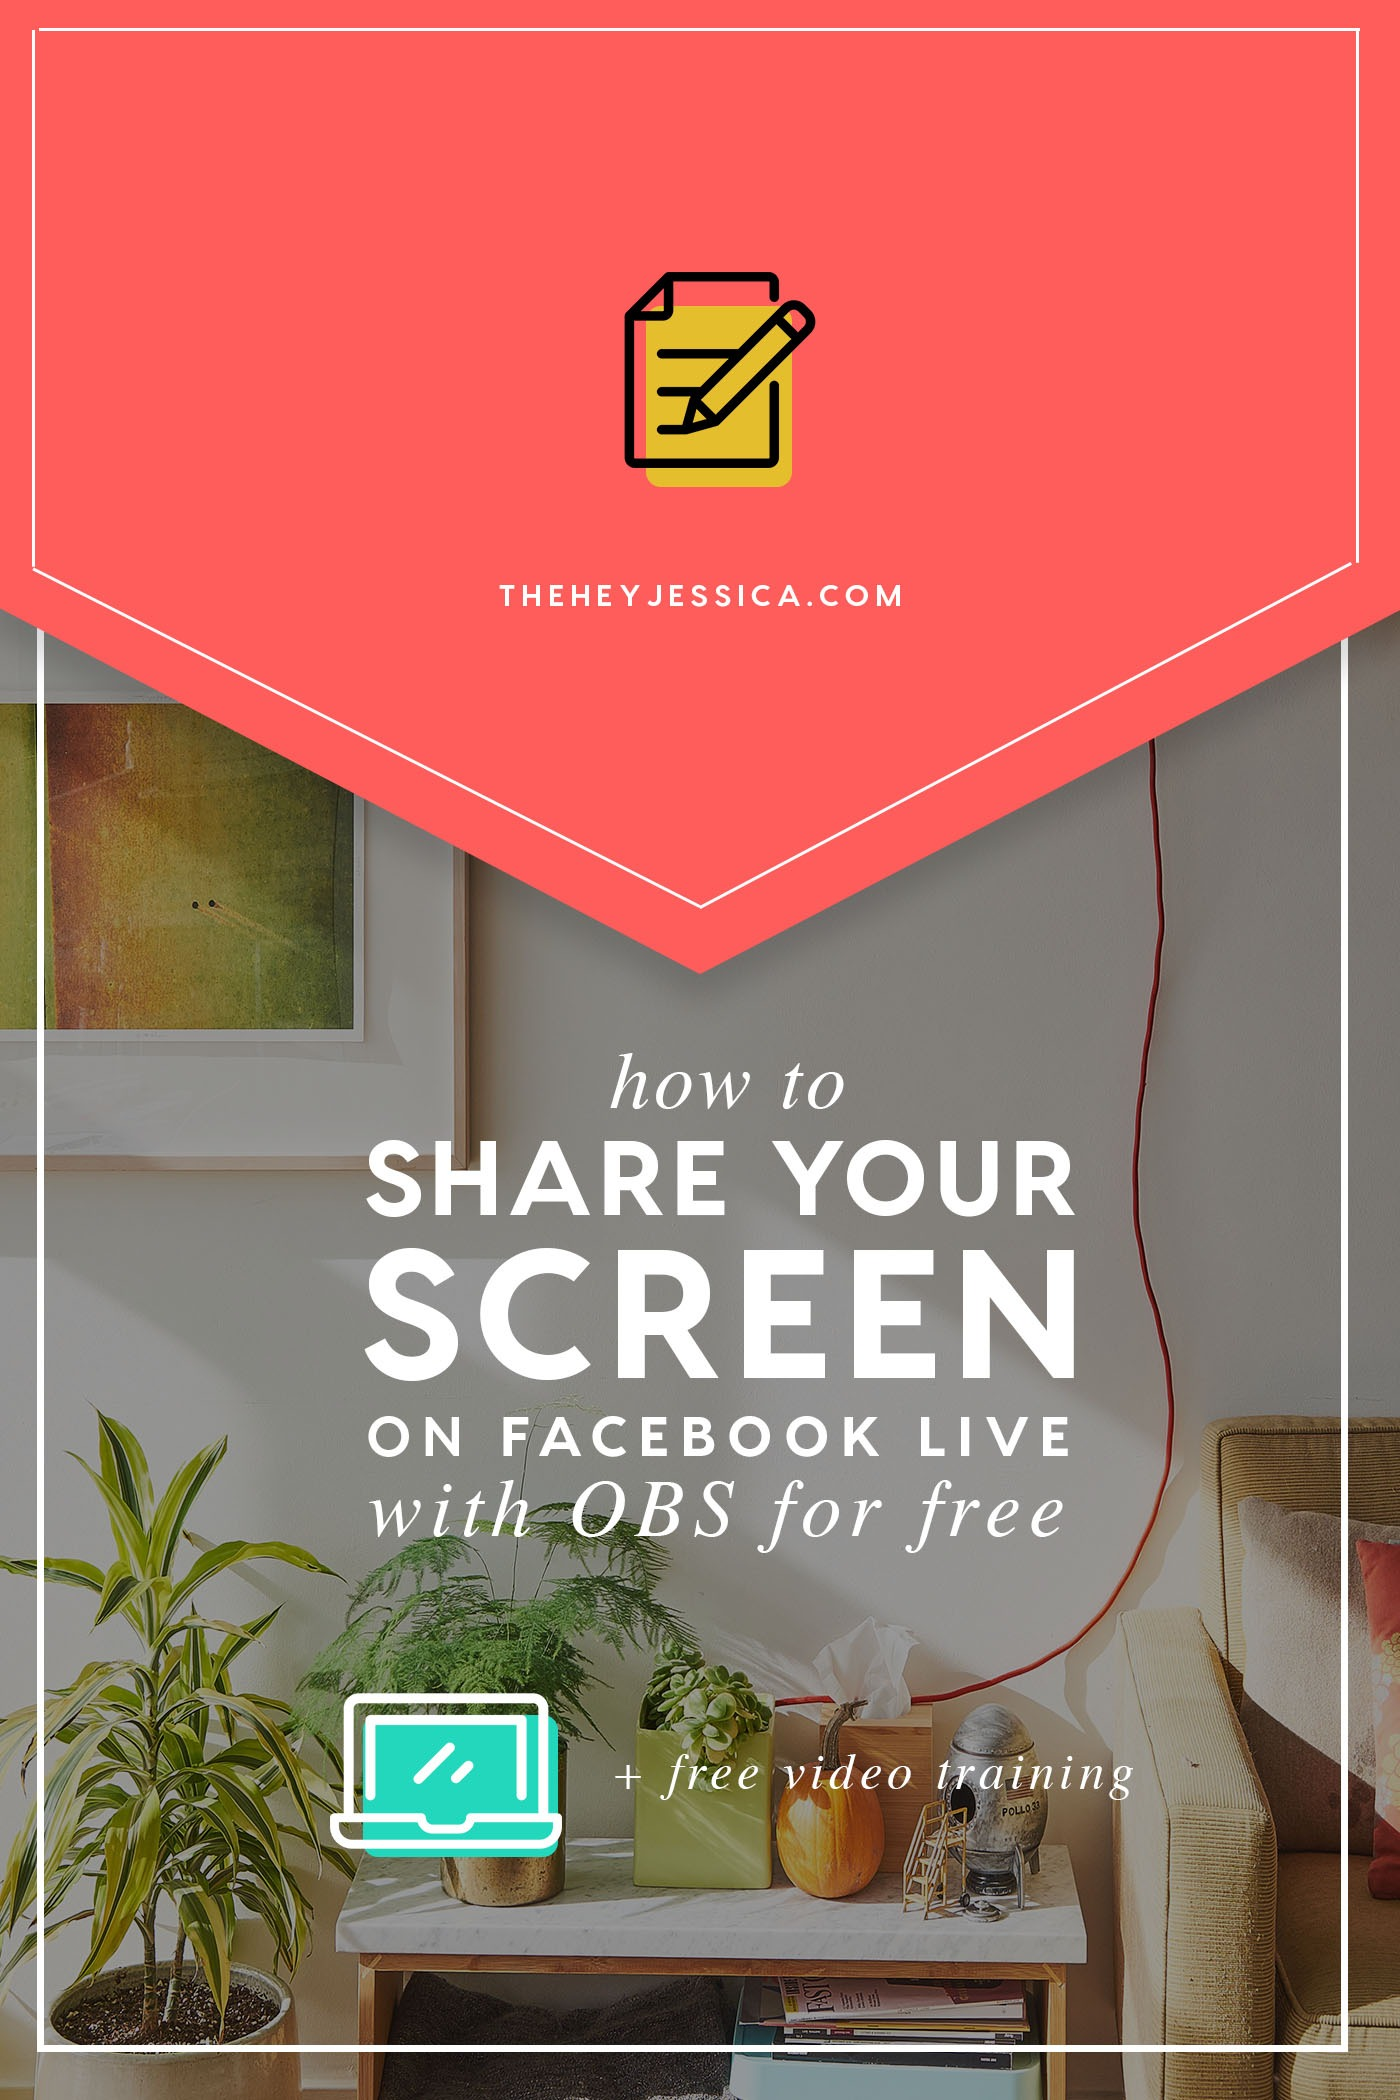 How to Share Your Screen on Facebook Live with OBS